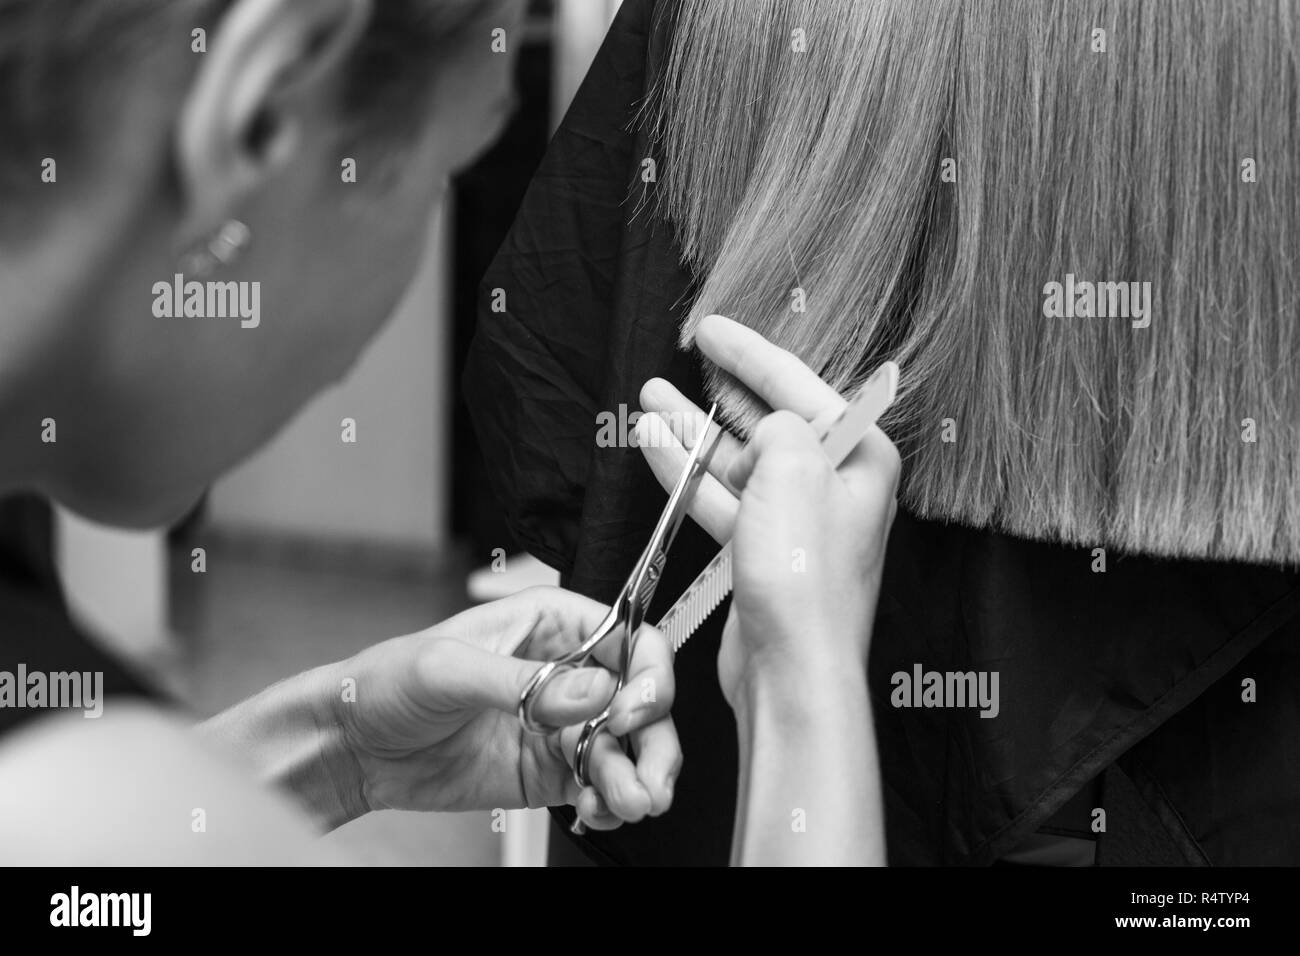 the Barber cuts the hair of a client at the beauty salon close-up. Stock Photo